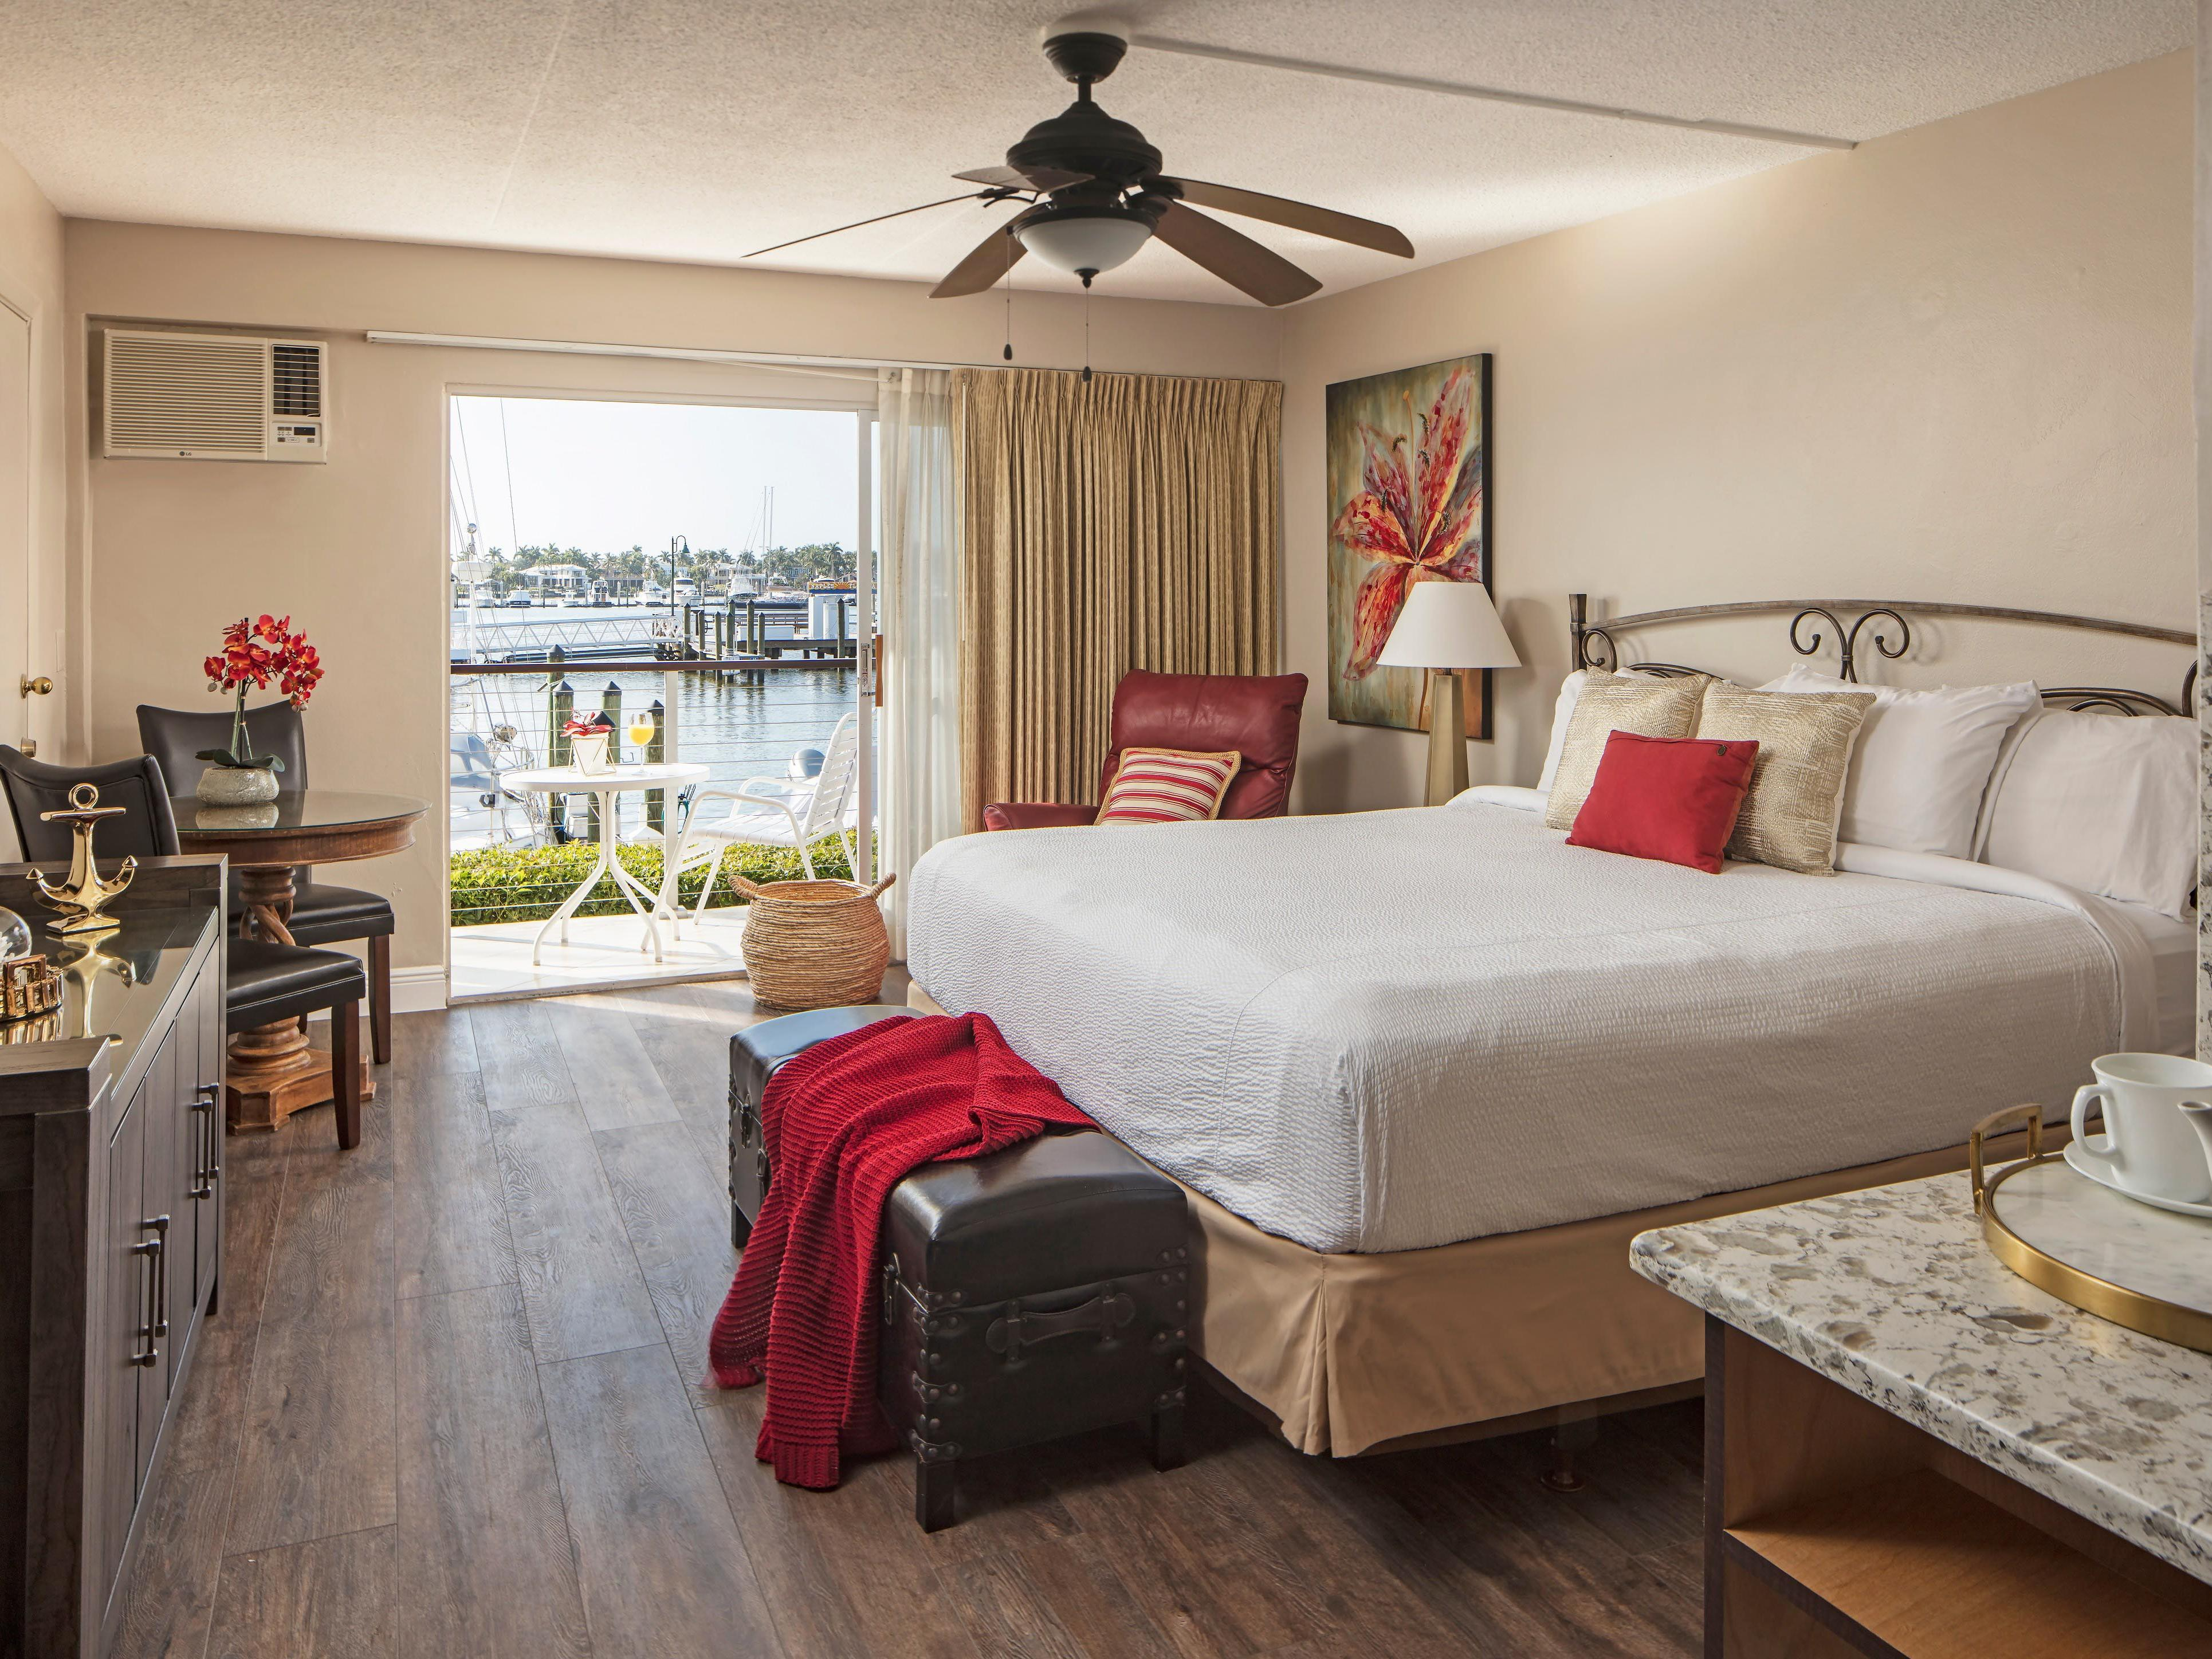 King bed guest room with harbor views.